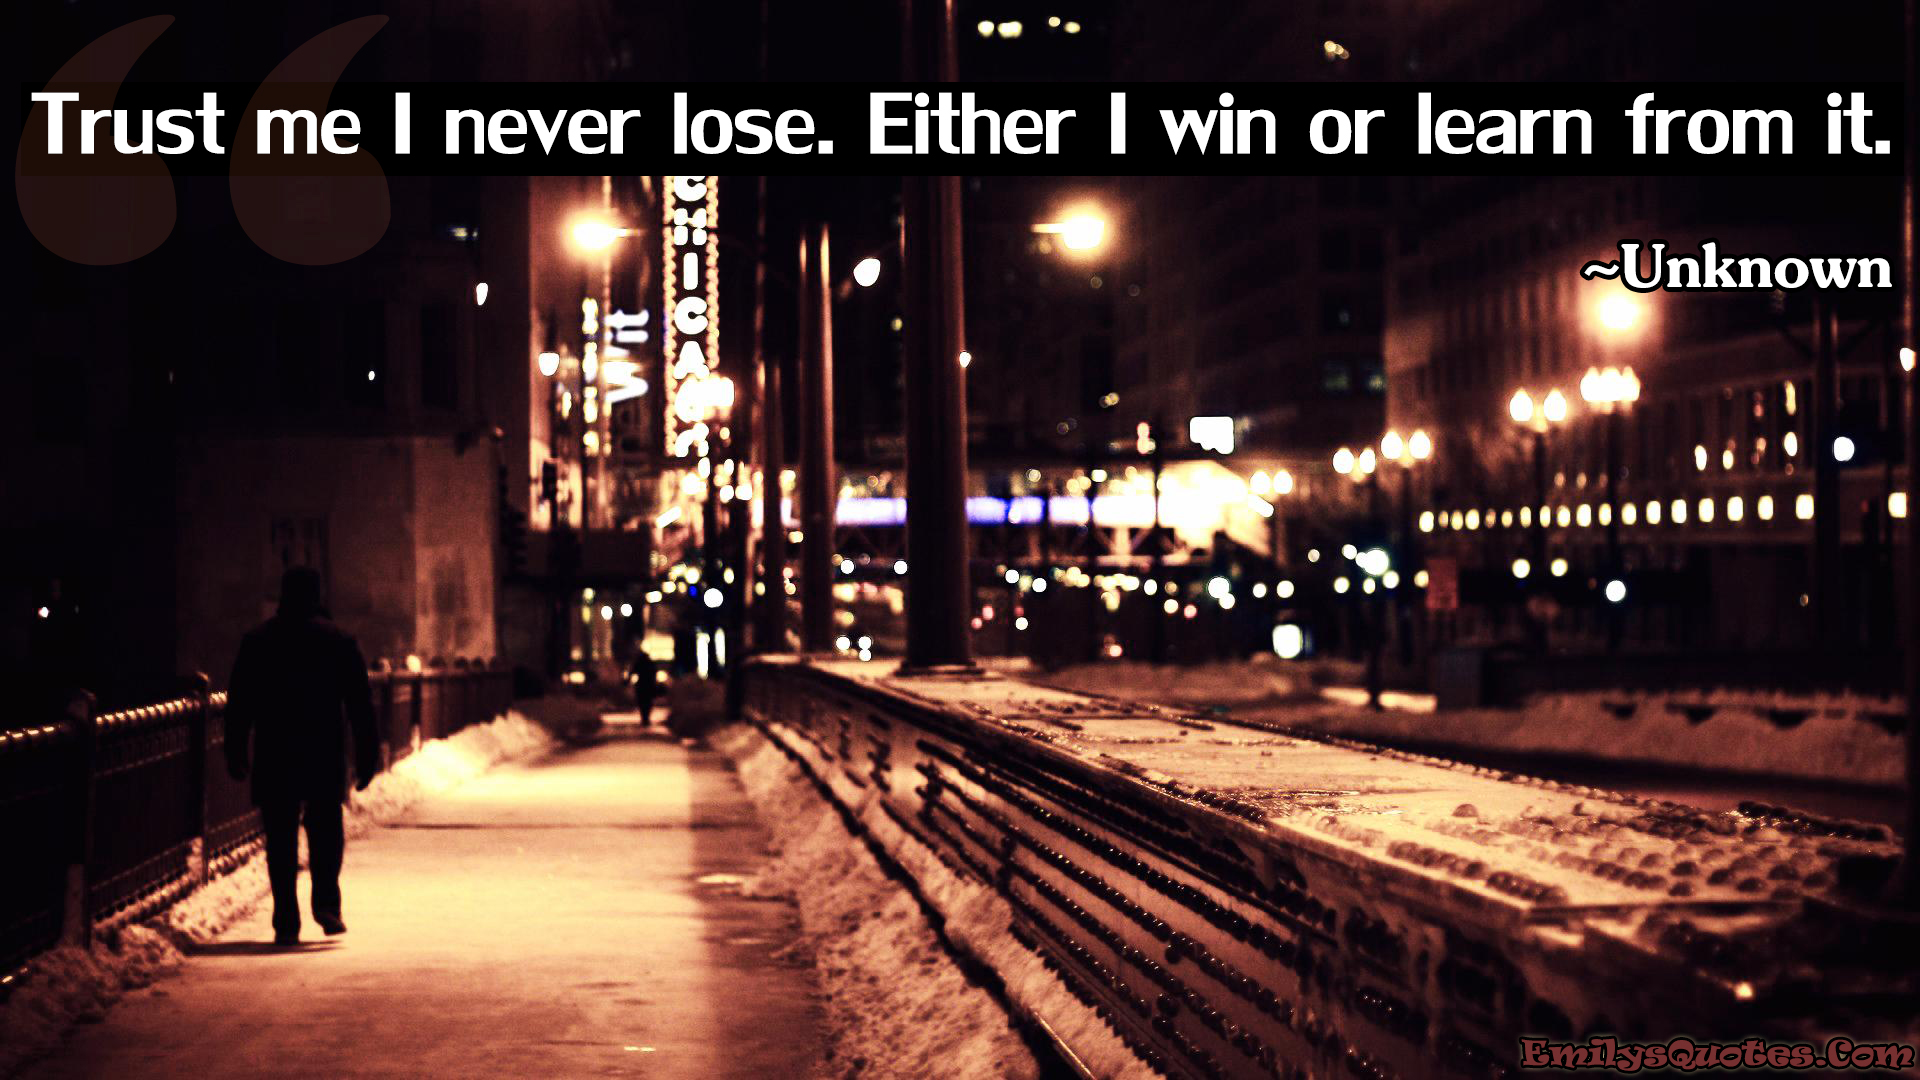 trust me i never lose  either i win or learn from it